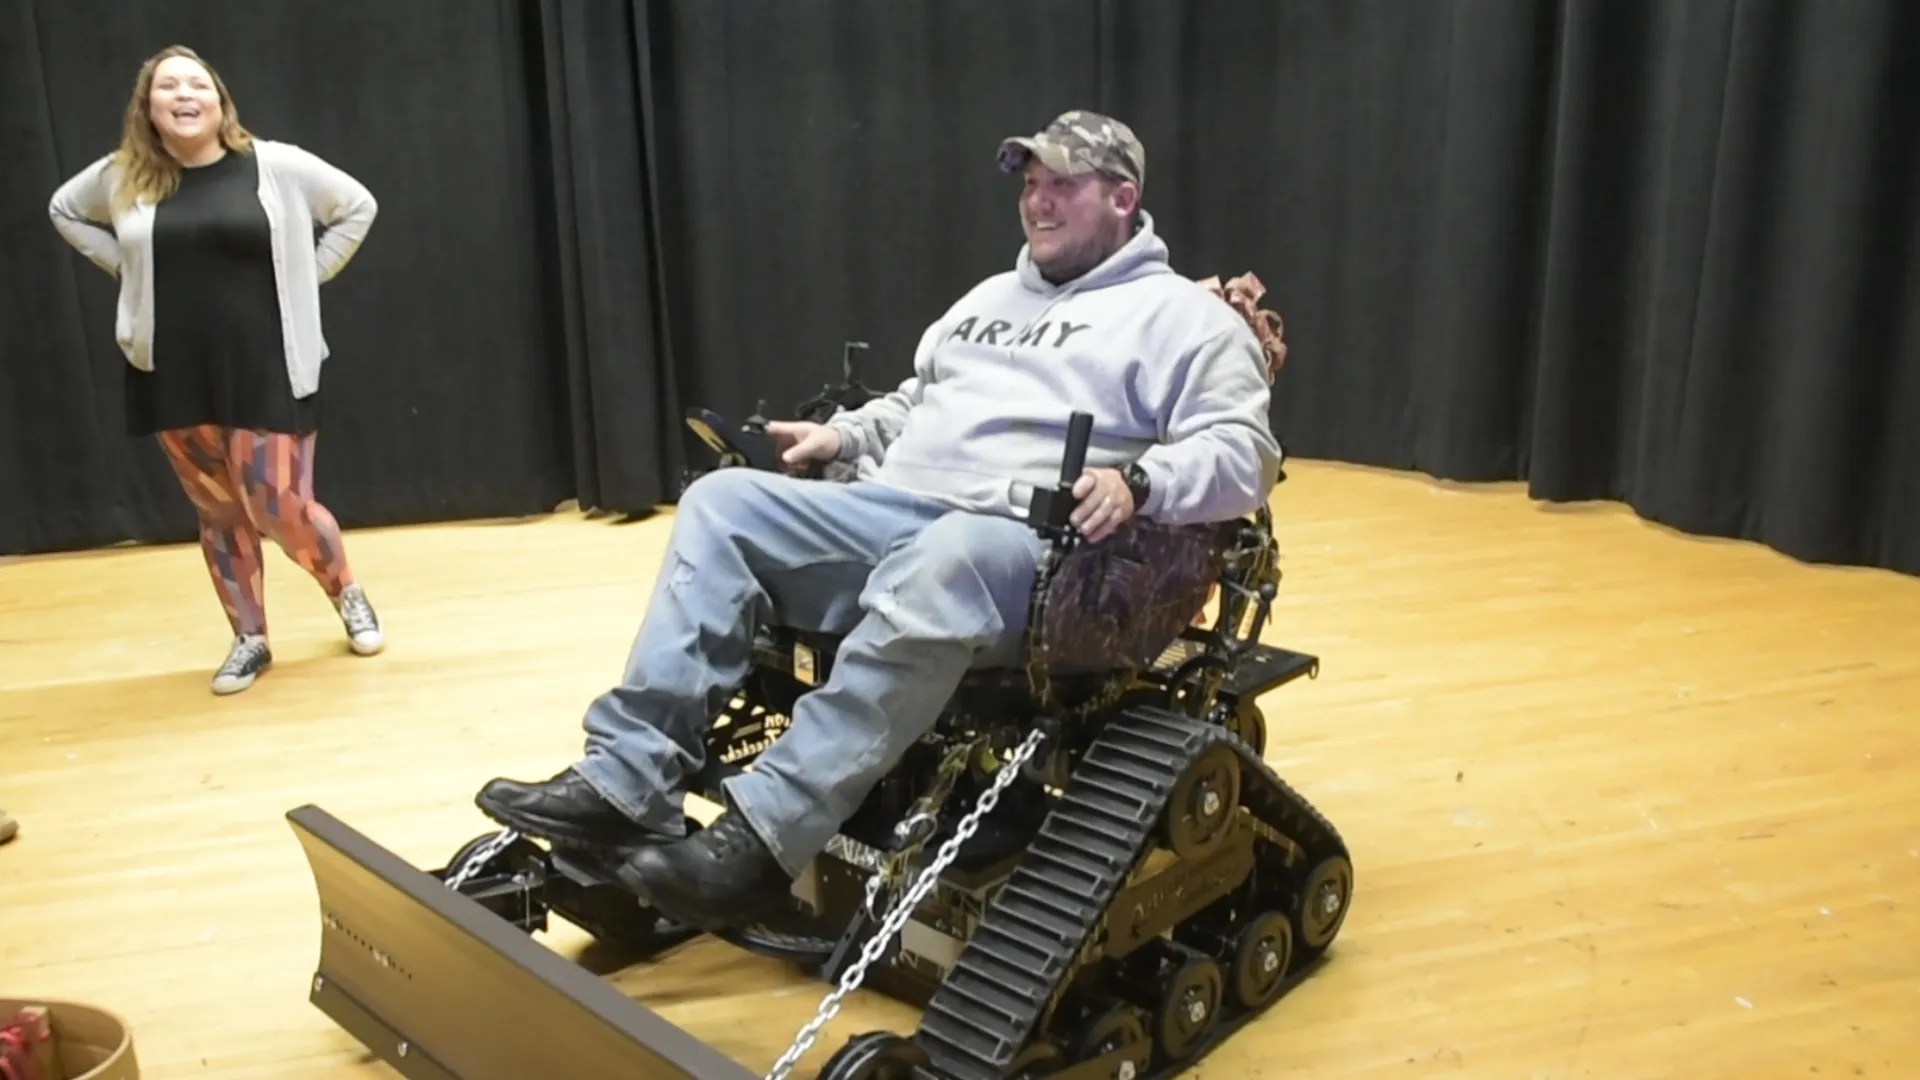 action track chair the chronicles of narnia silver cast hanover veteran surprised with trackchair